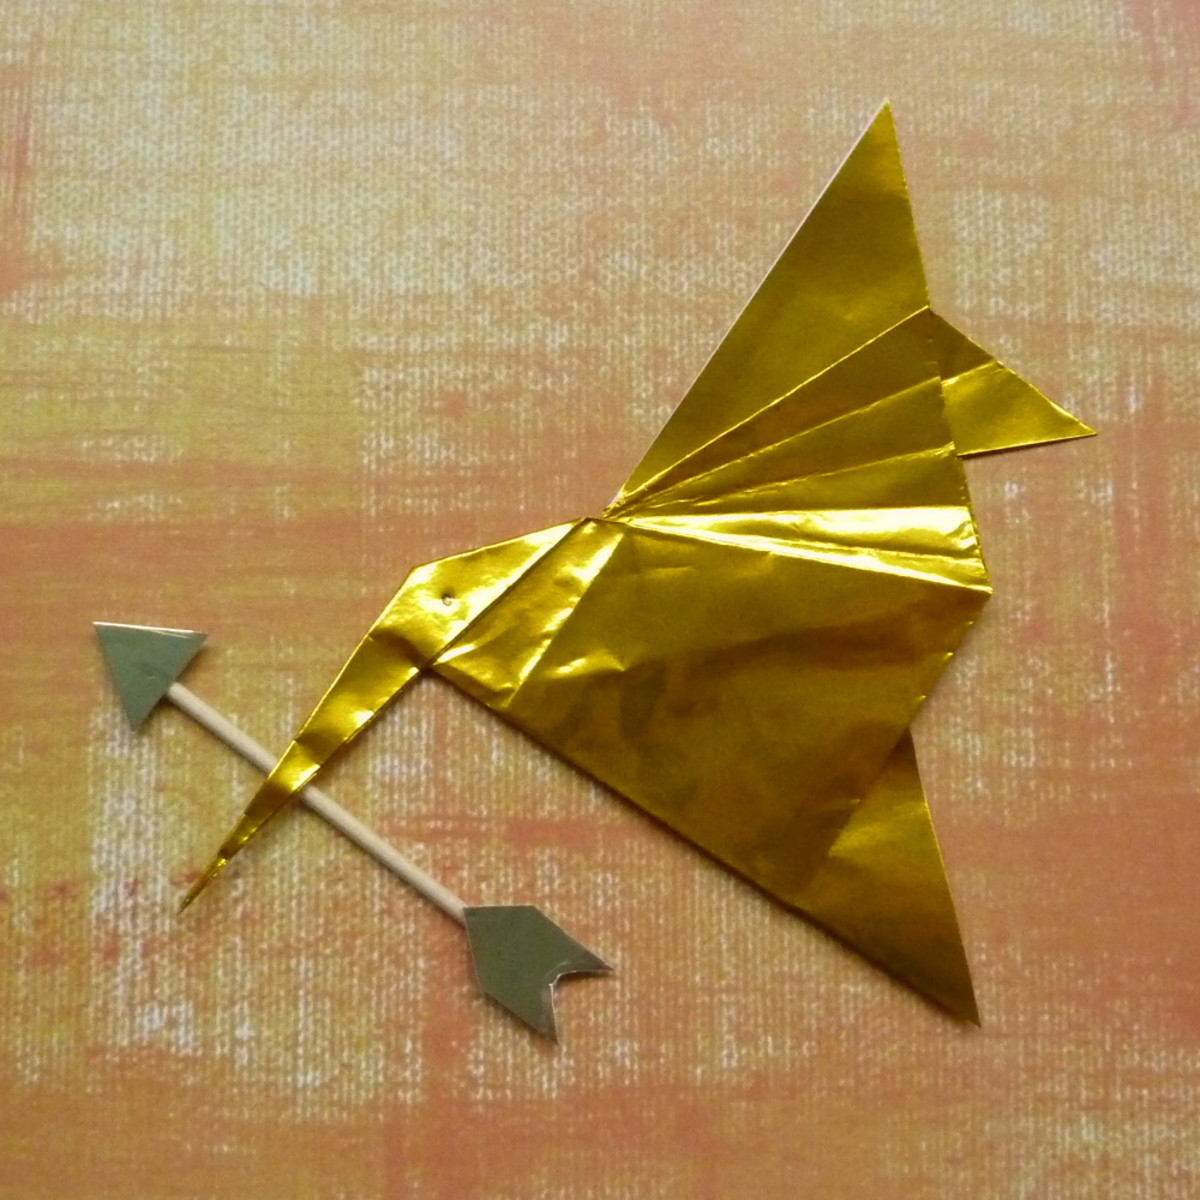 Hunger Games Origami Projects Hubpages